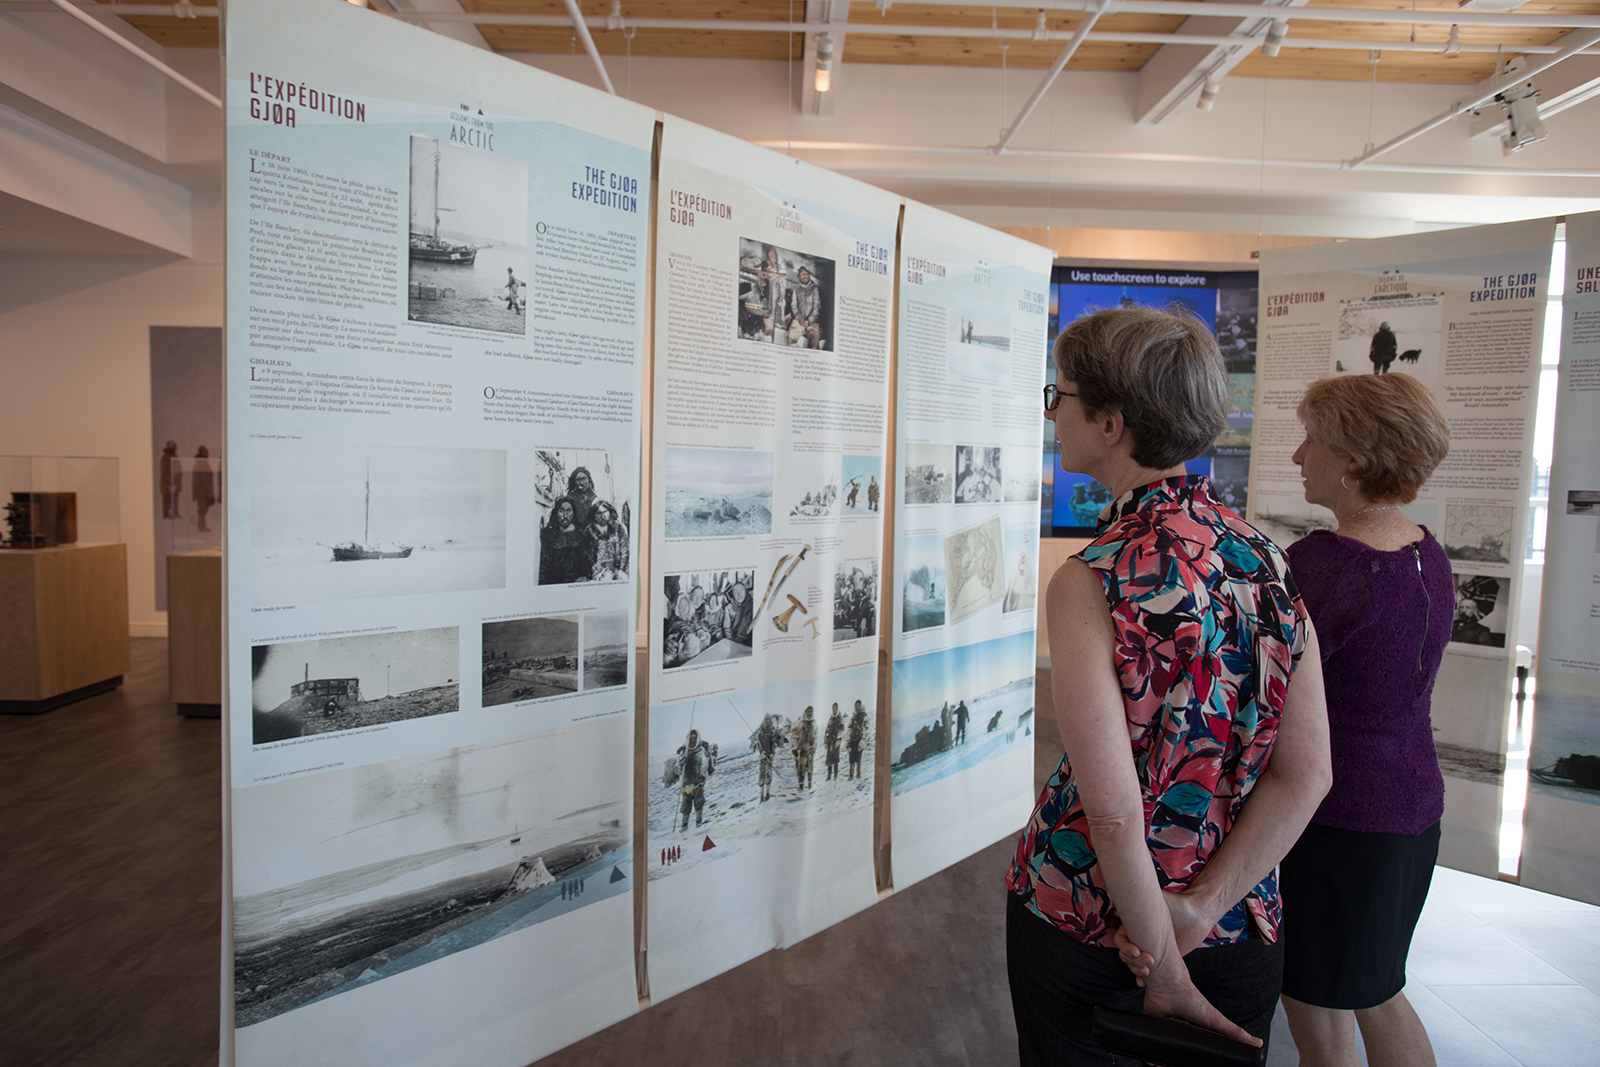 Two women read exhibit displays about polar explorer Roald Amundsen at 50 Sussex drive